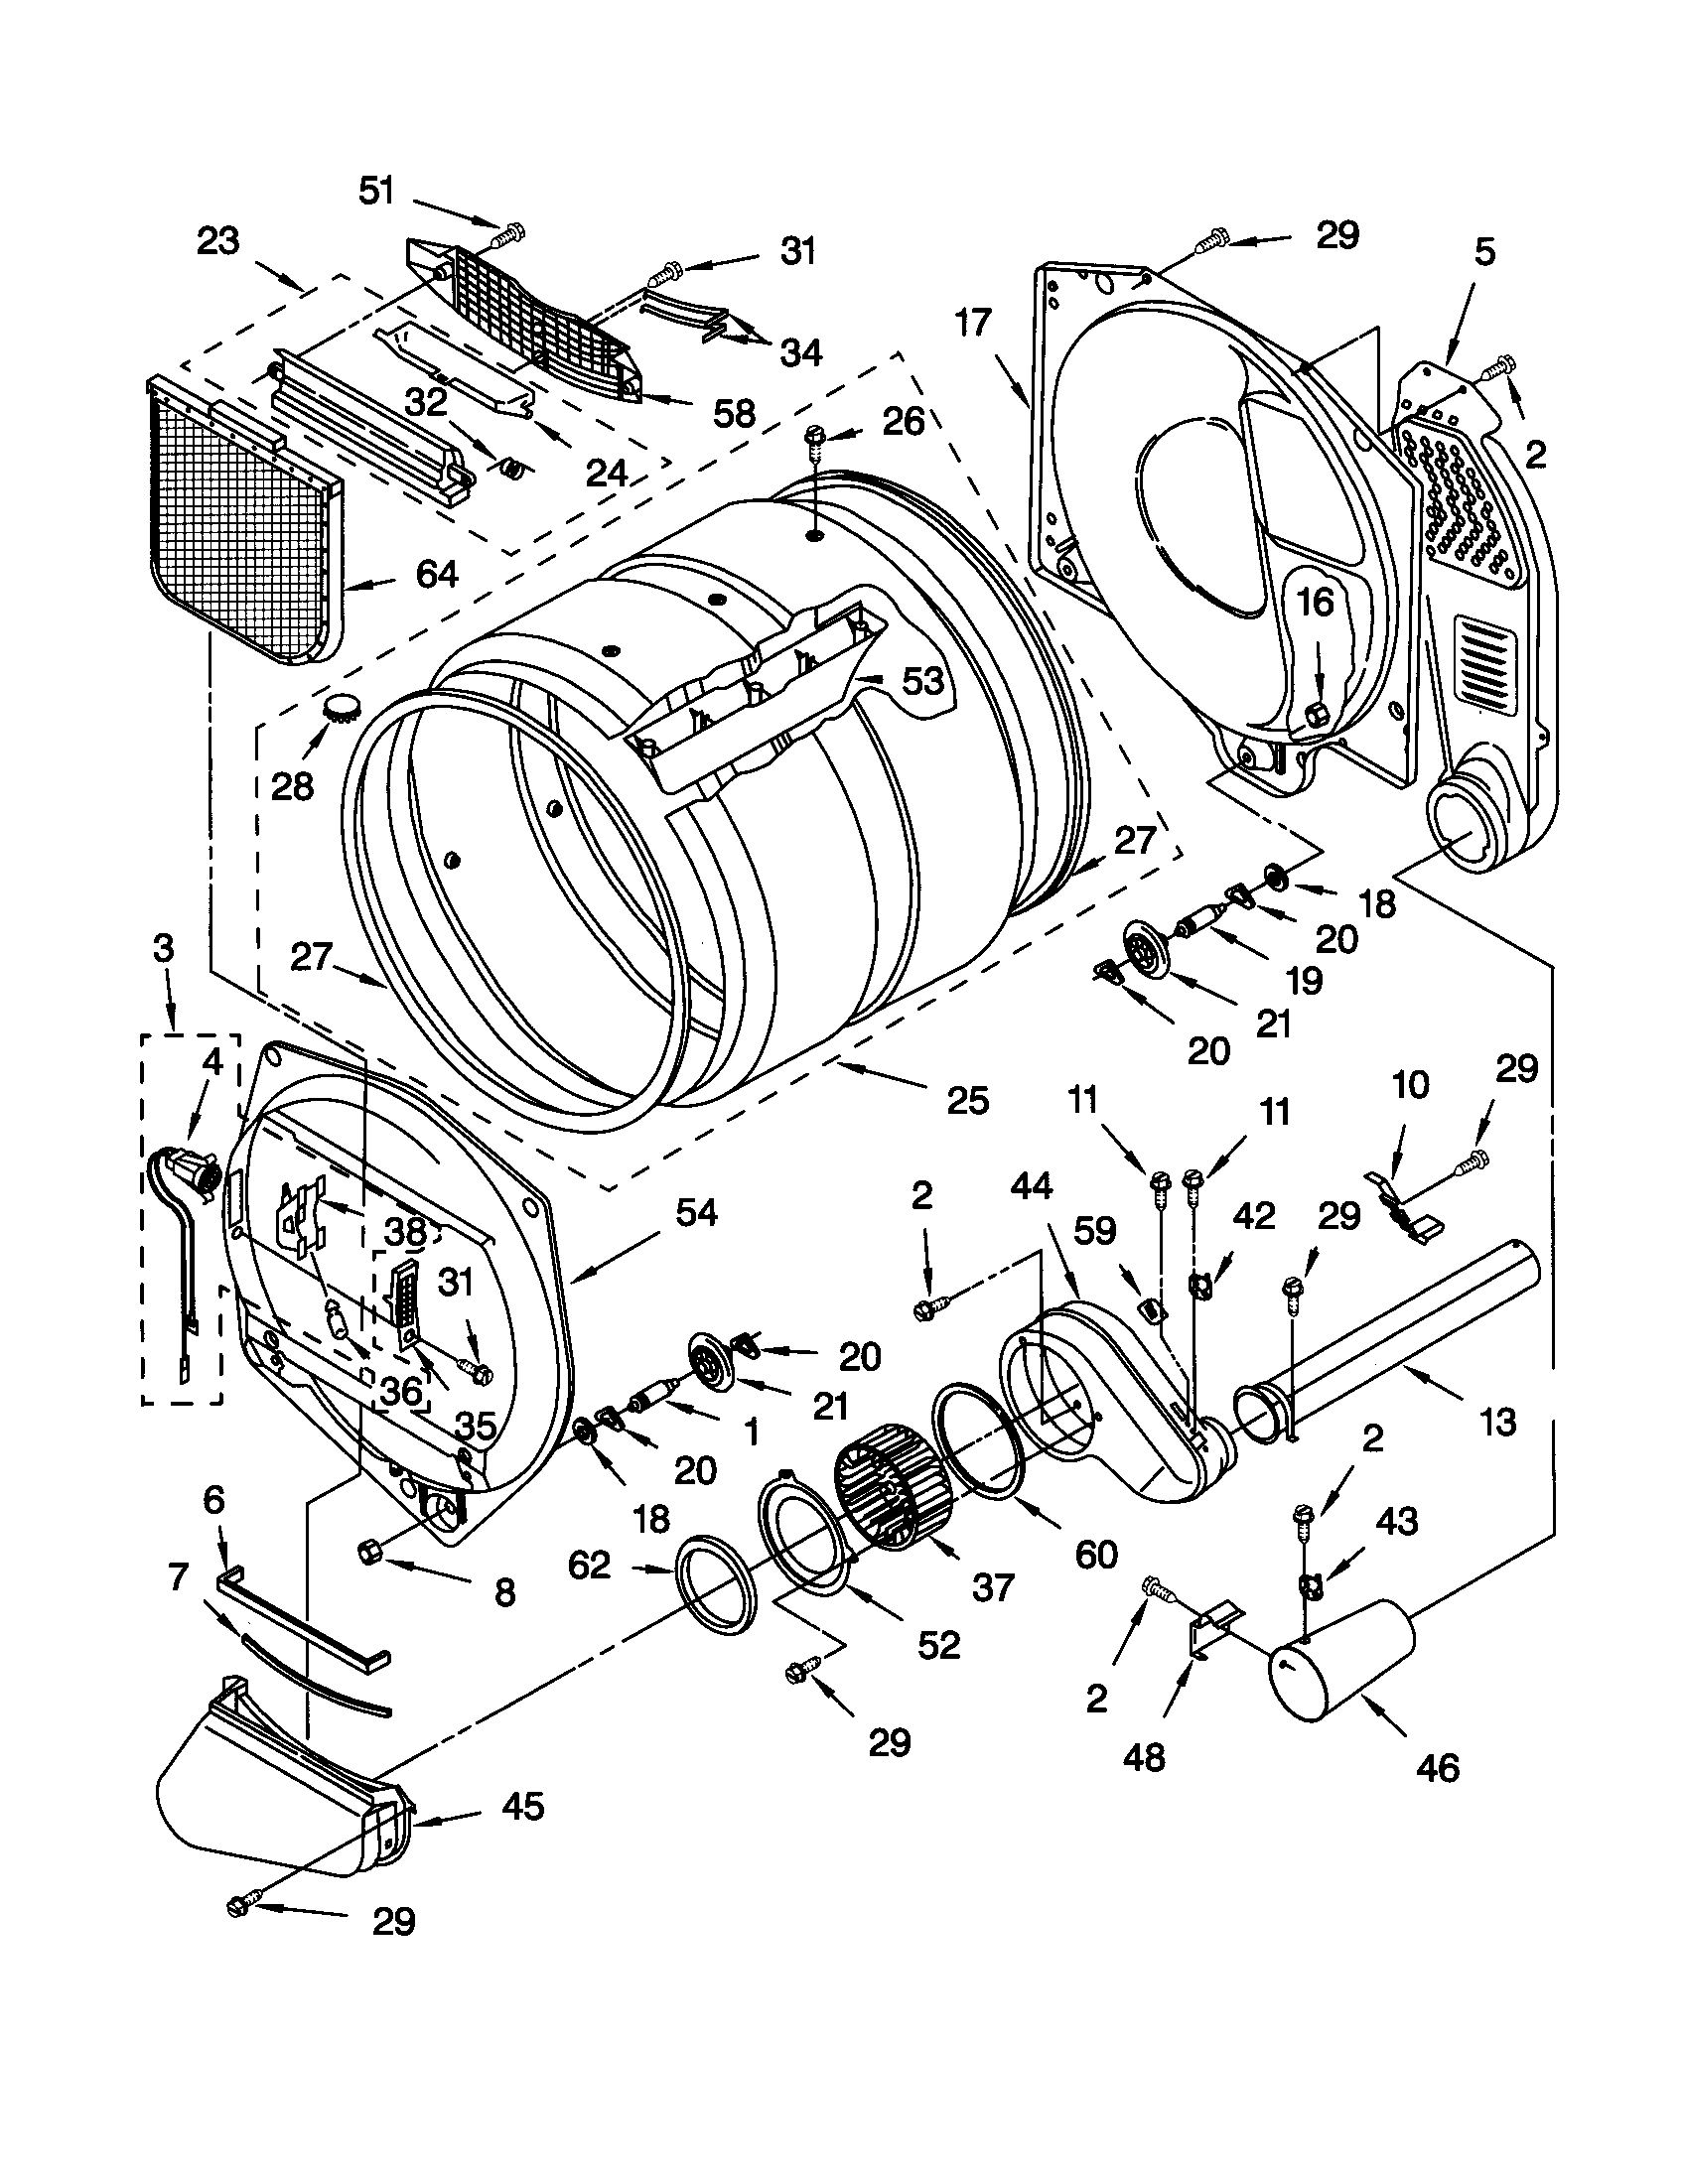 Kenmore Dryer Model 110 Wiring Diagram Collection